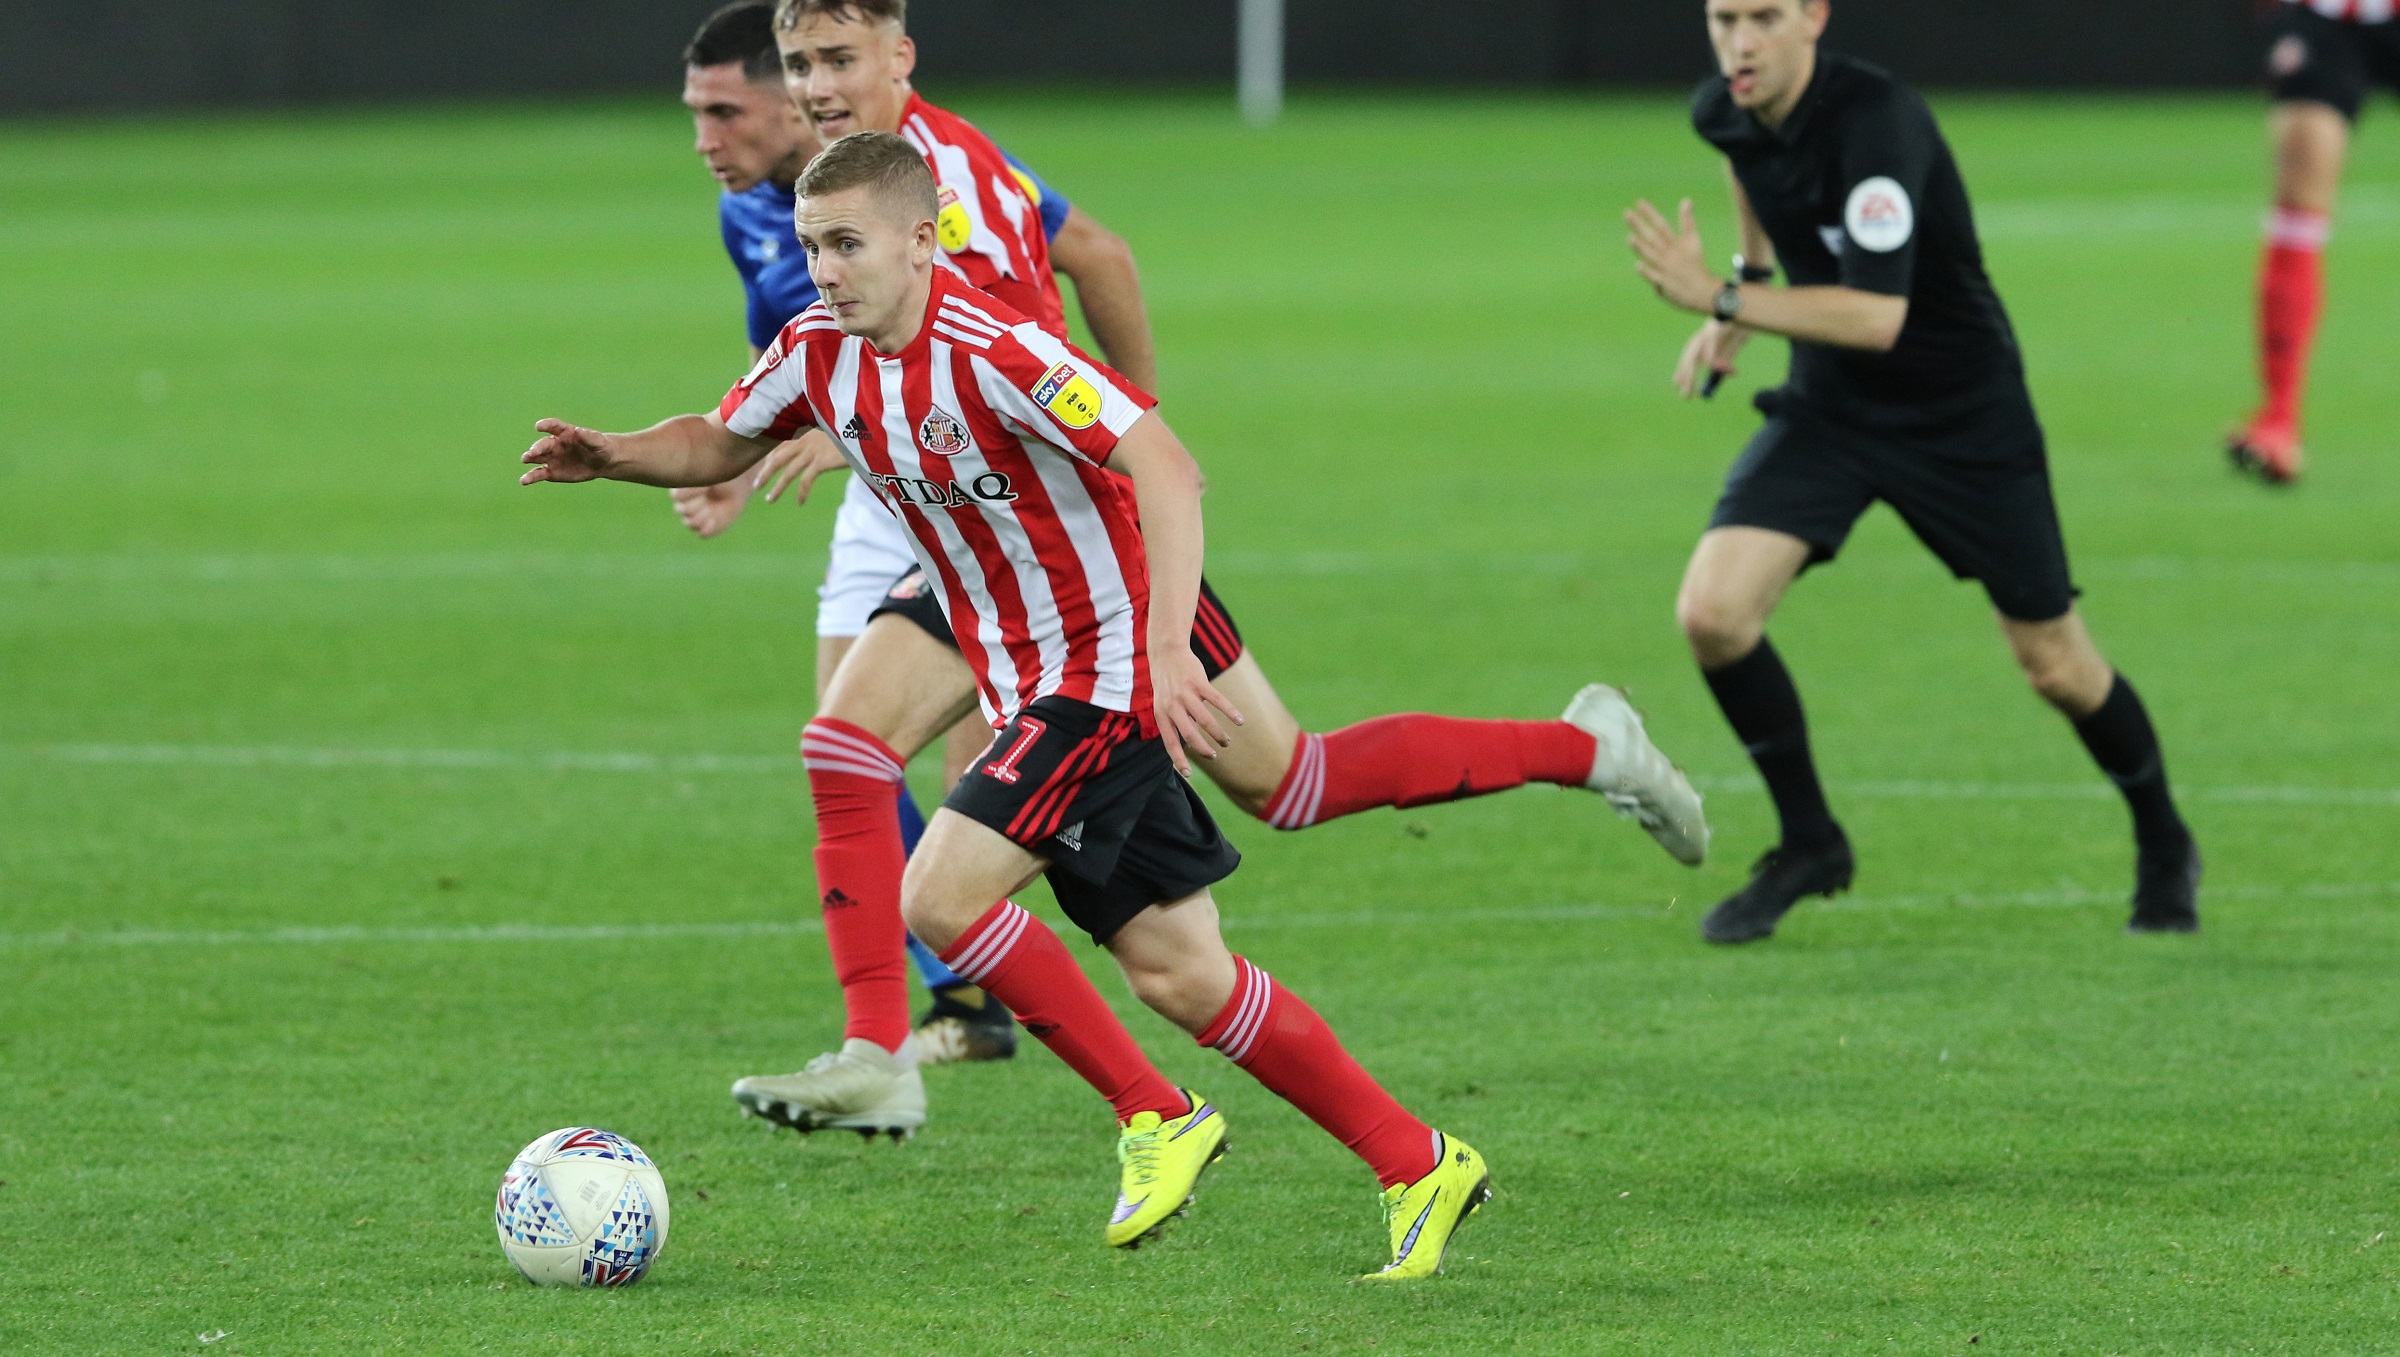 Mariners sign Lee Connelly on loan from Sunderland